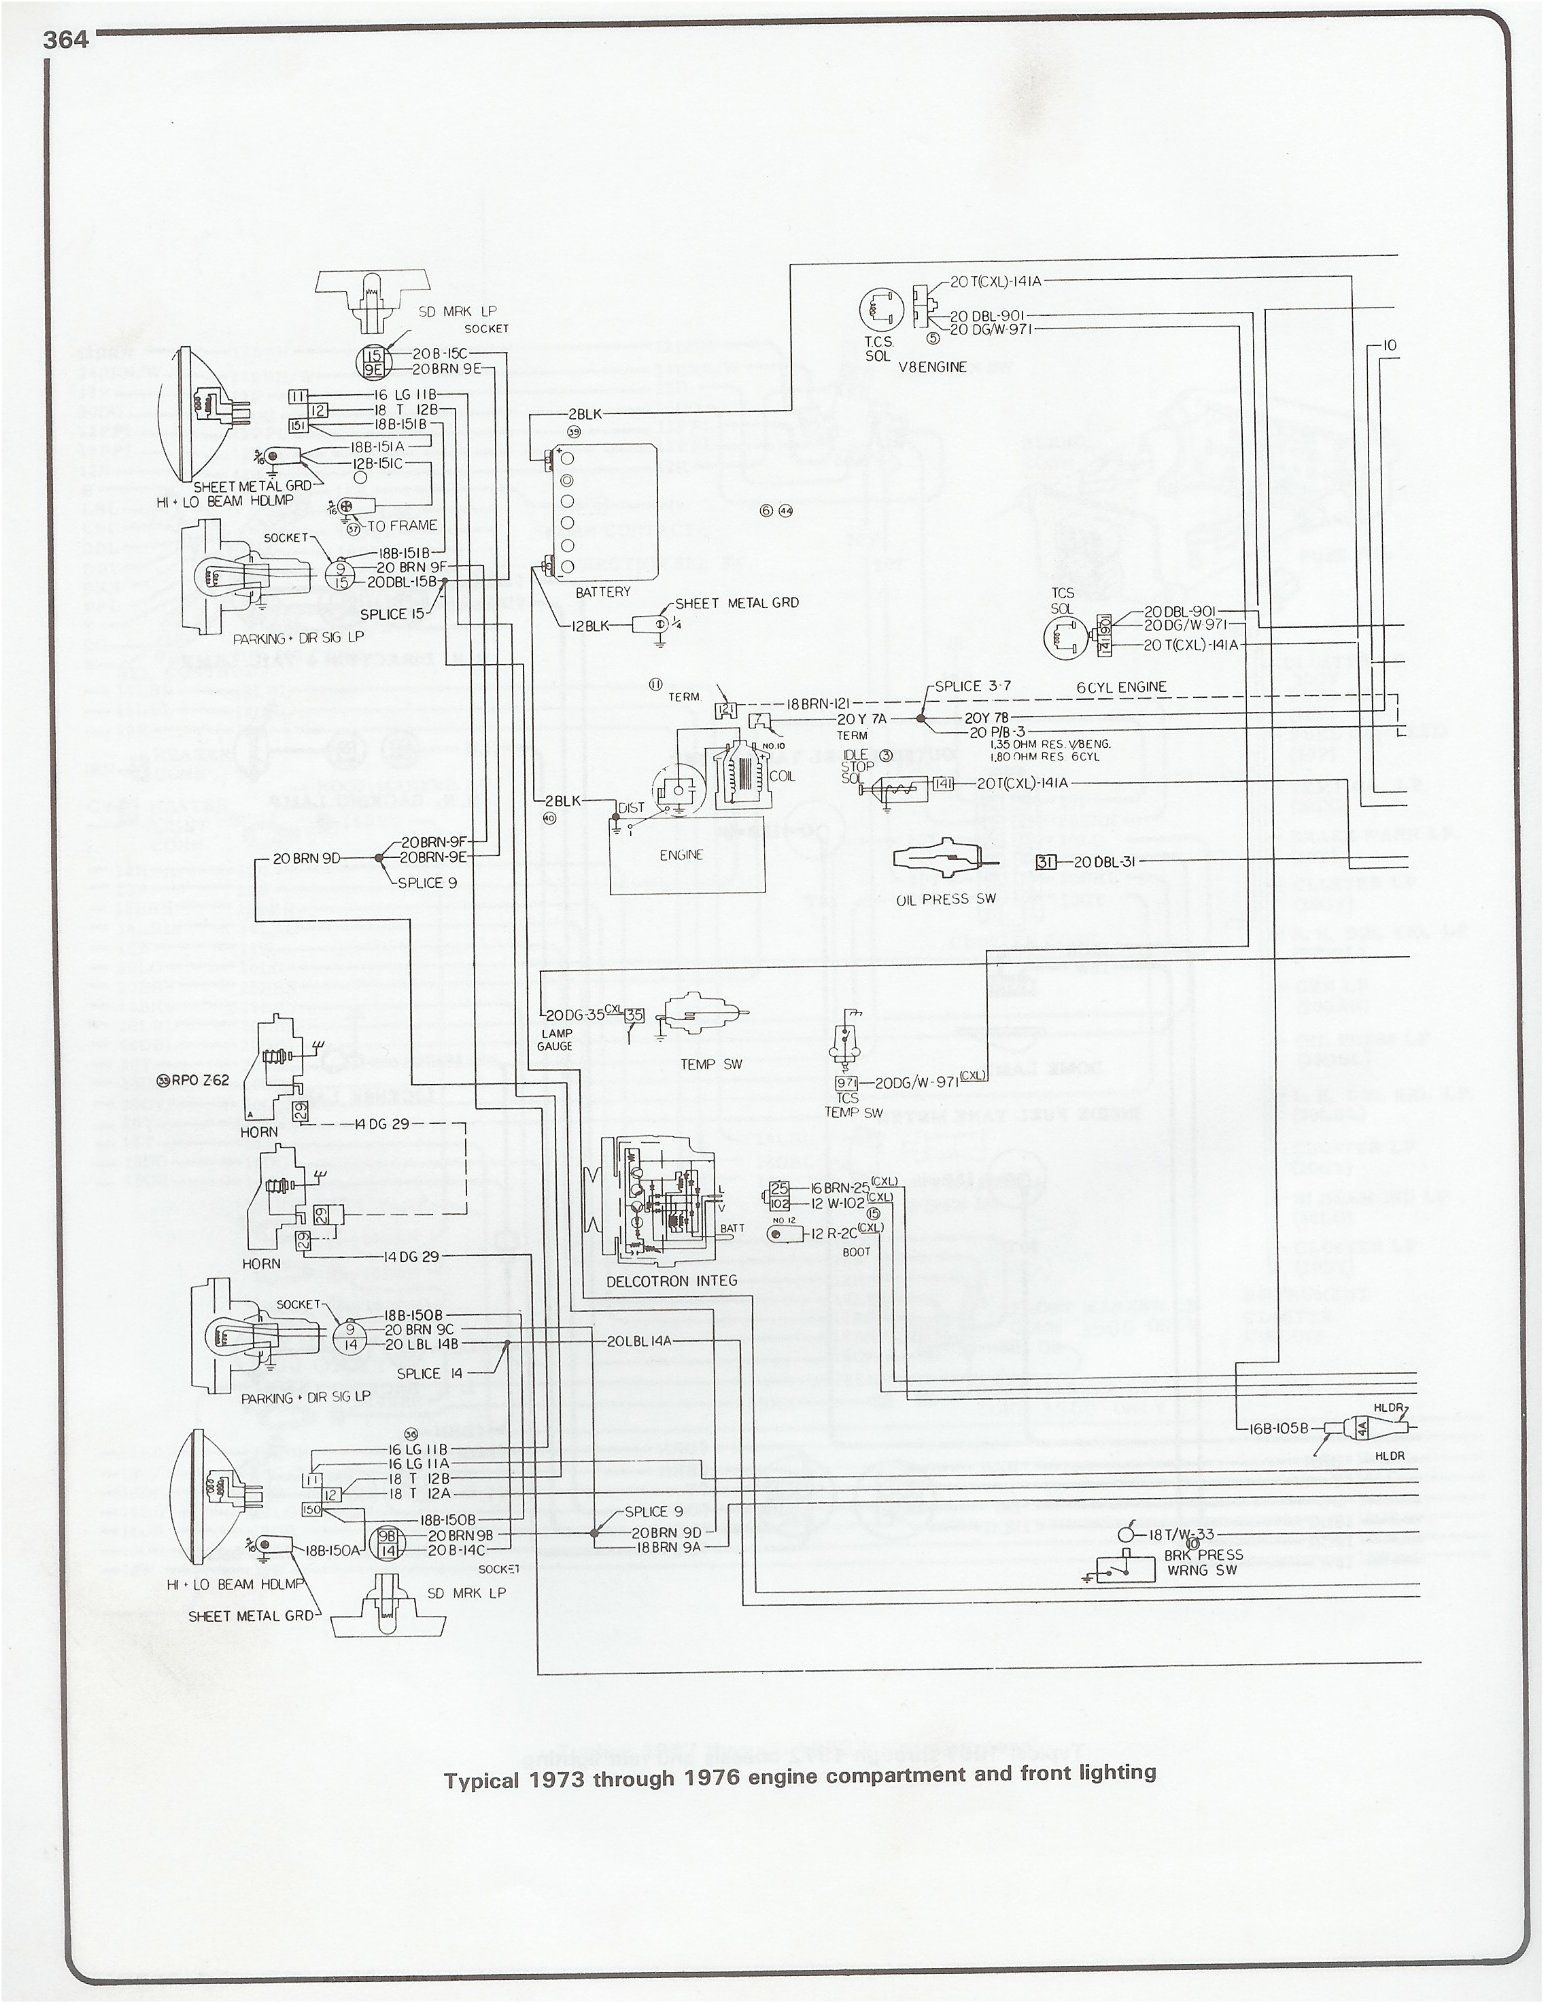 wiring diagram for classic 76